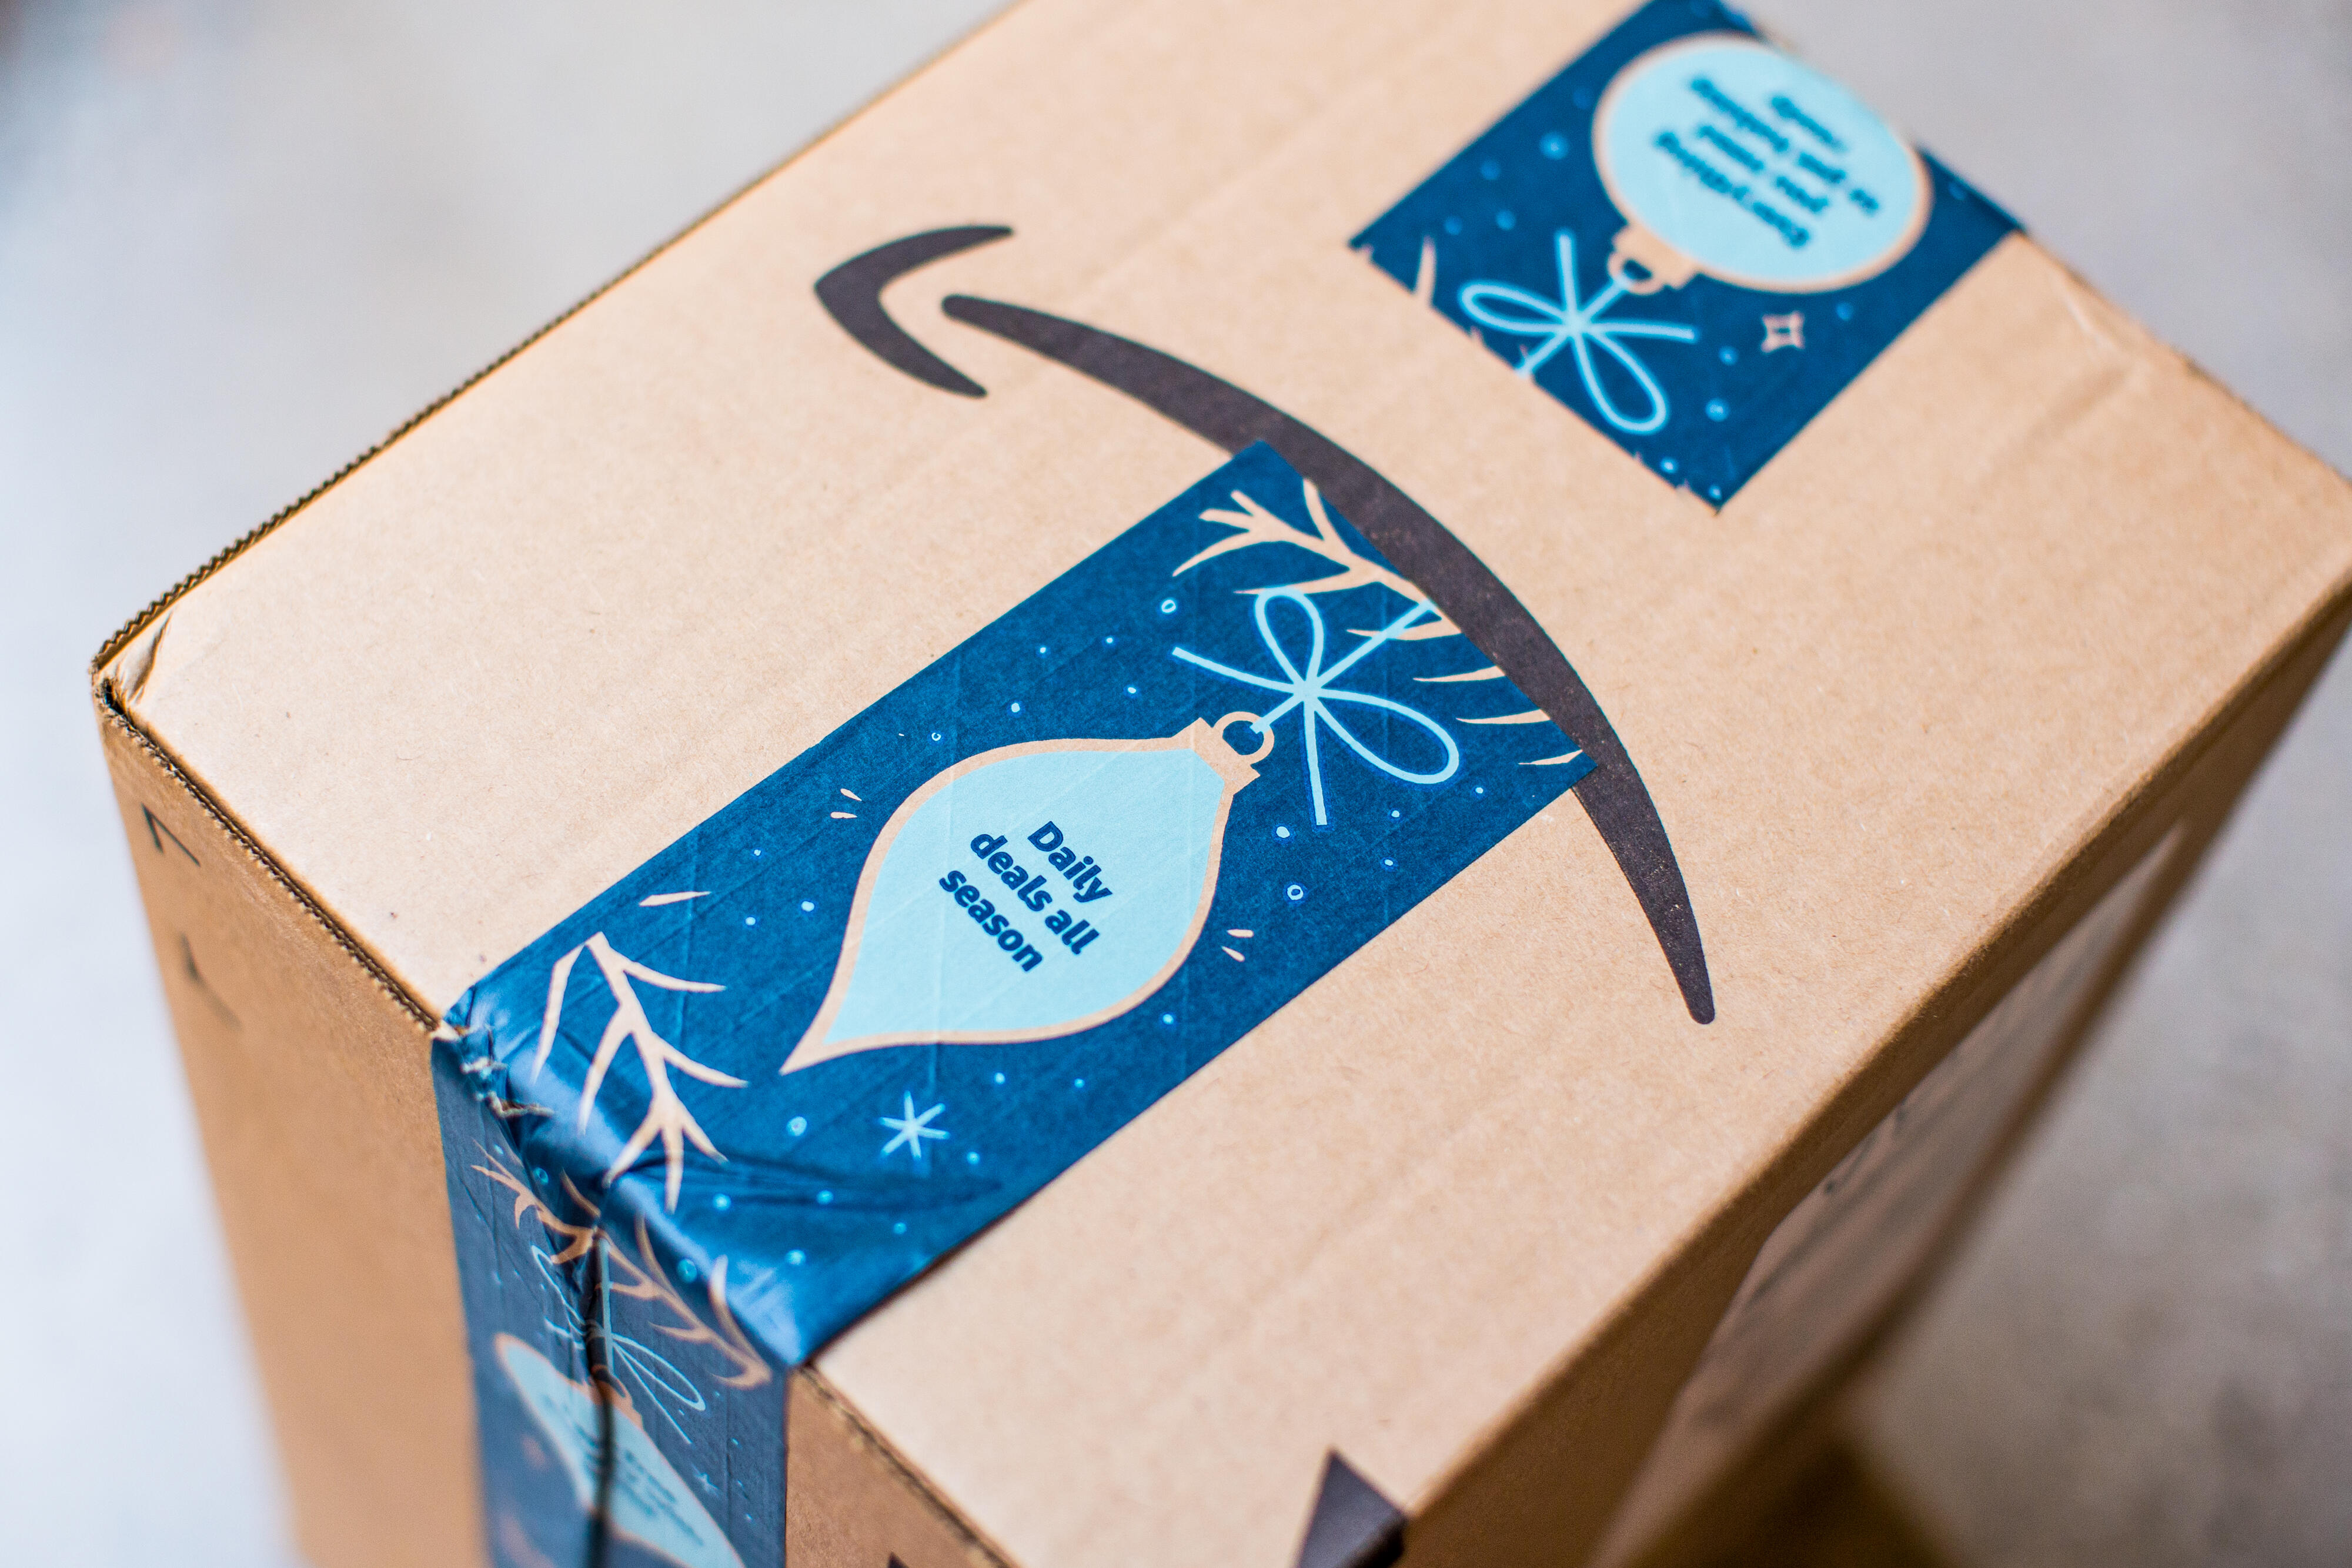 amazon-delivery-box-3669